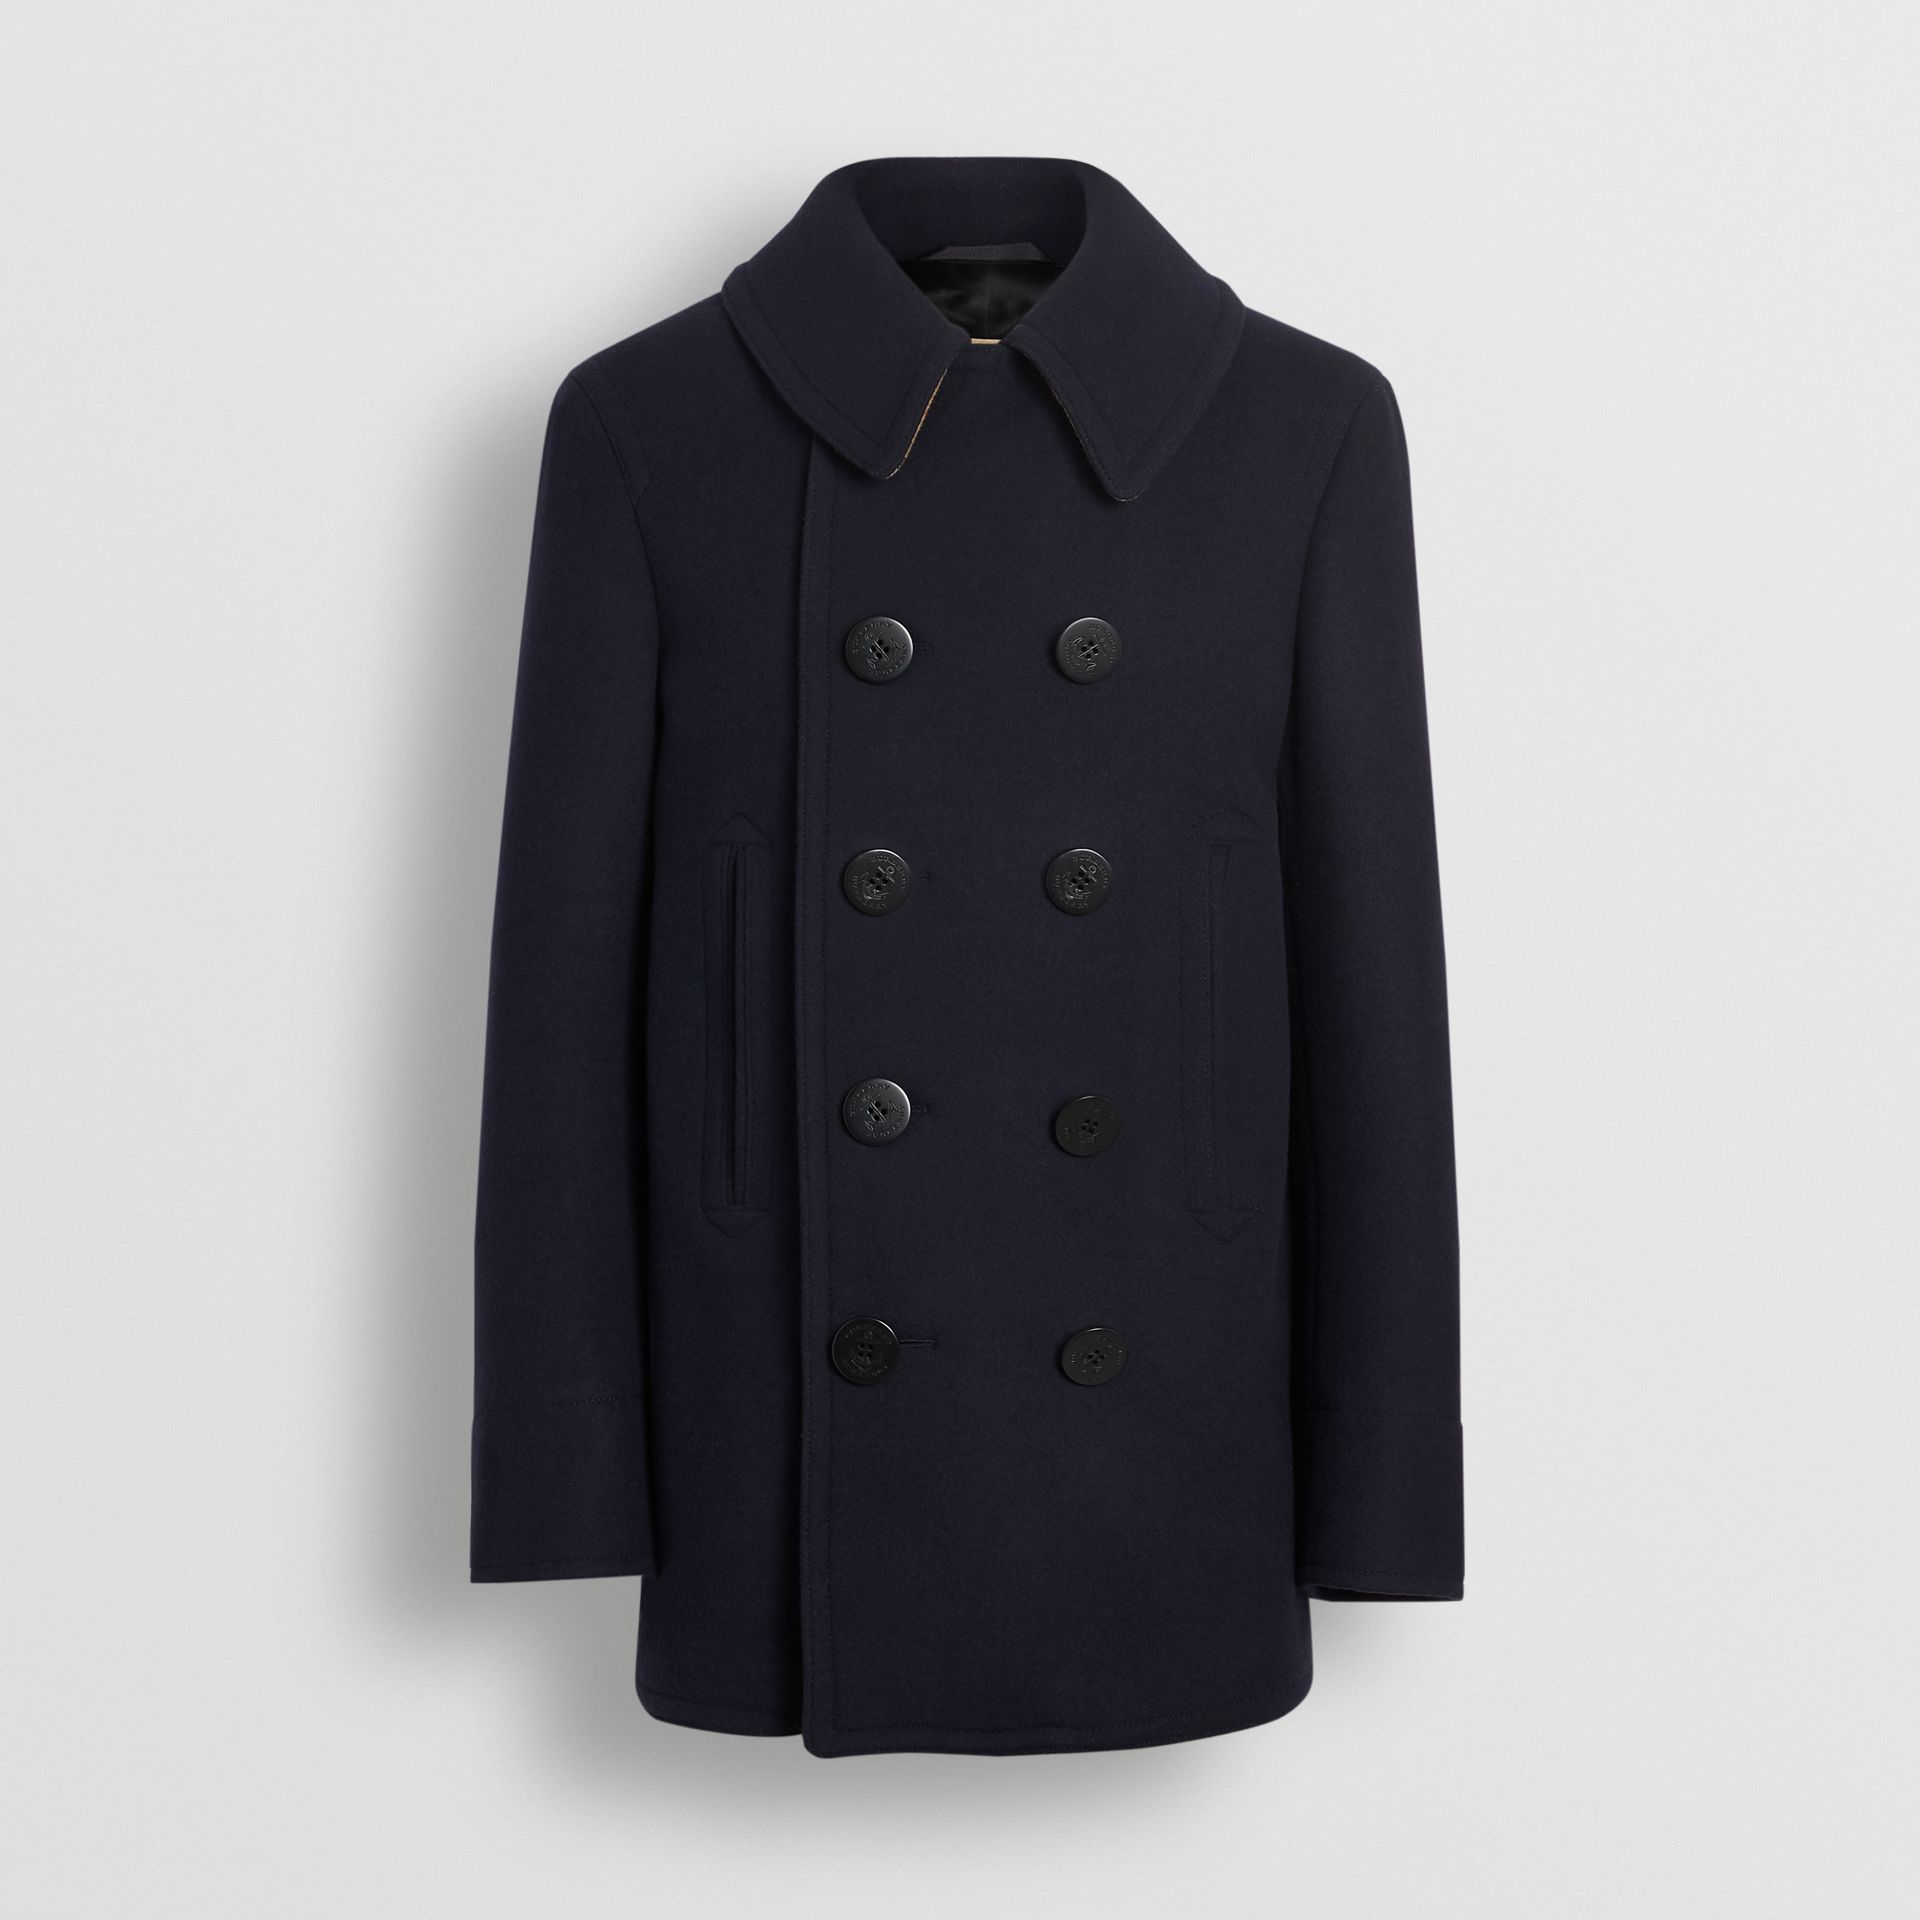 Wool Blend Pea Coat in Navy - Men | Burberry Canada - gallery image 3